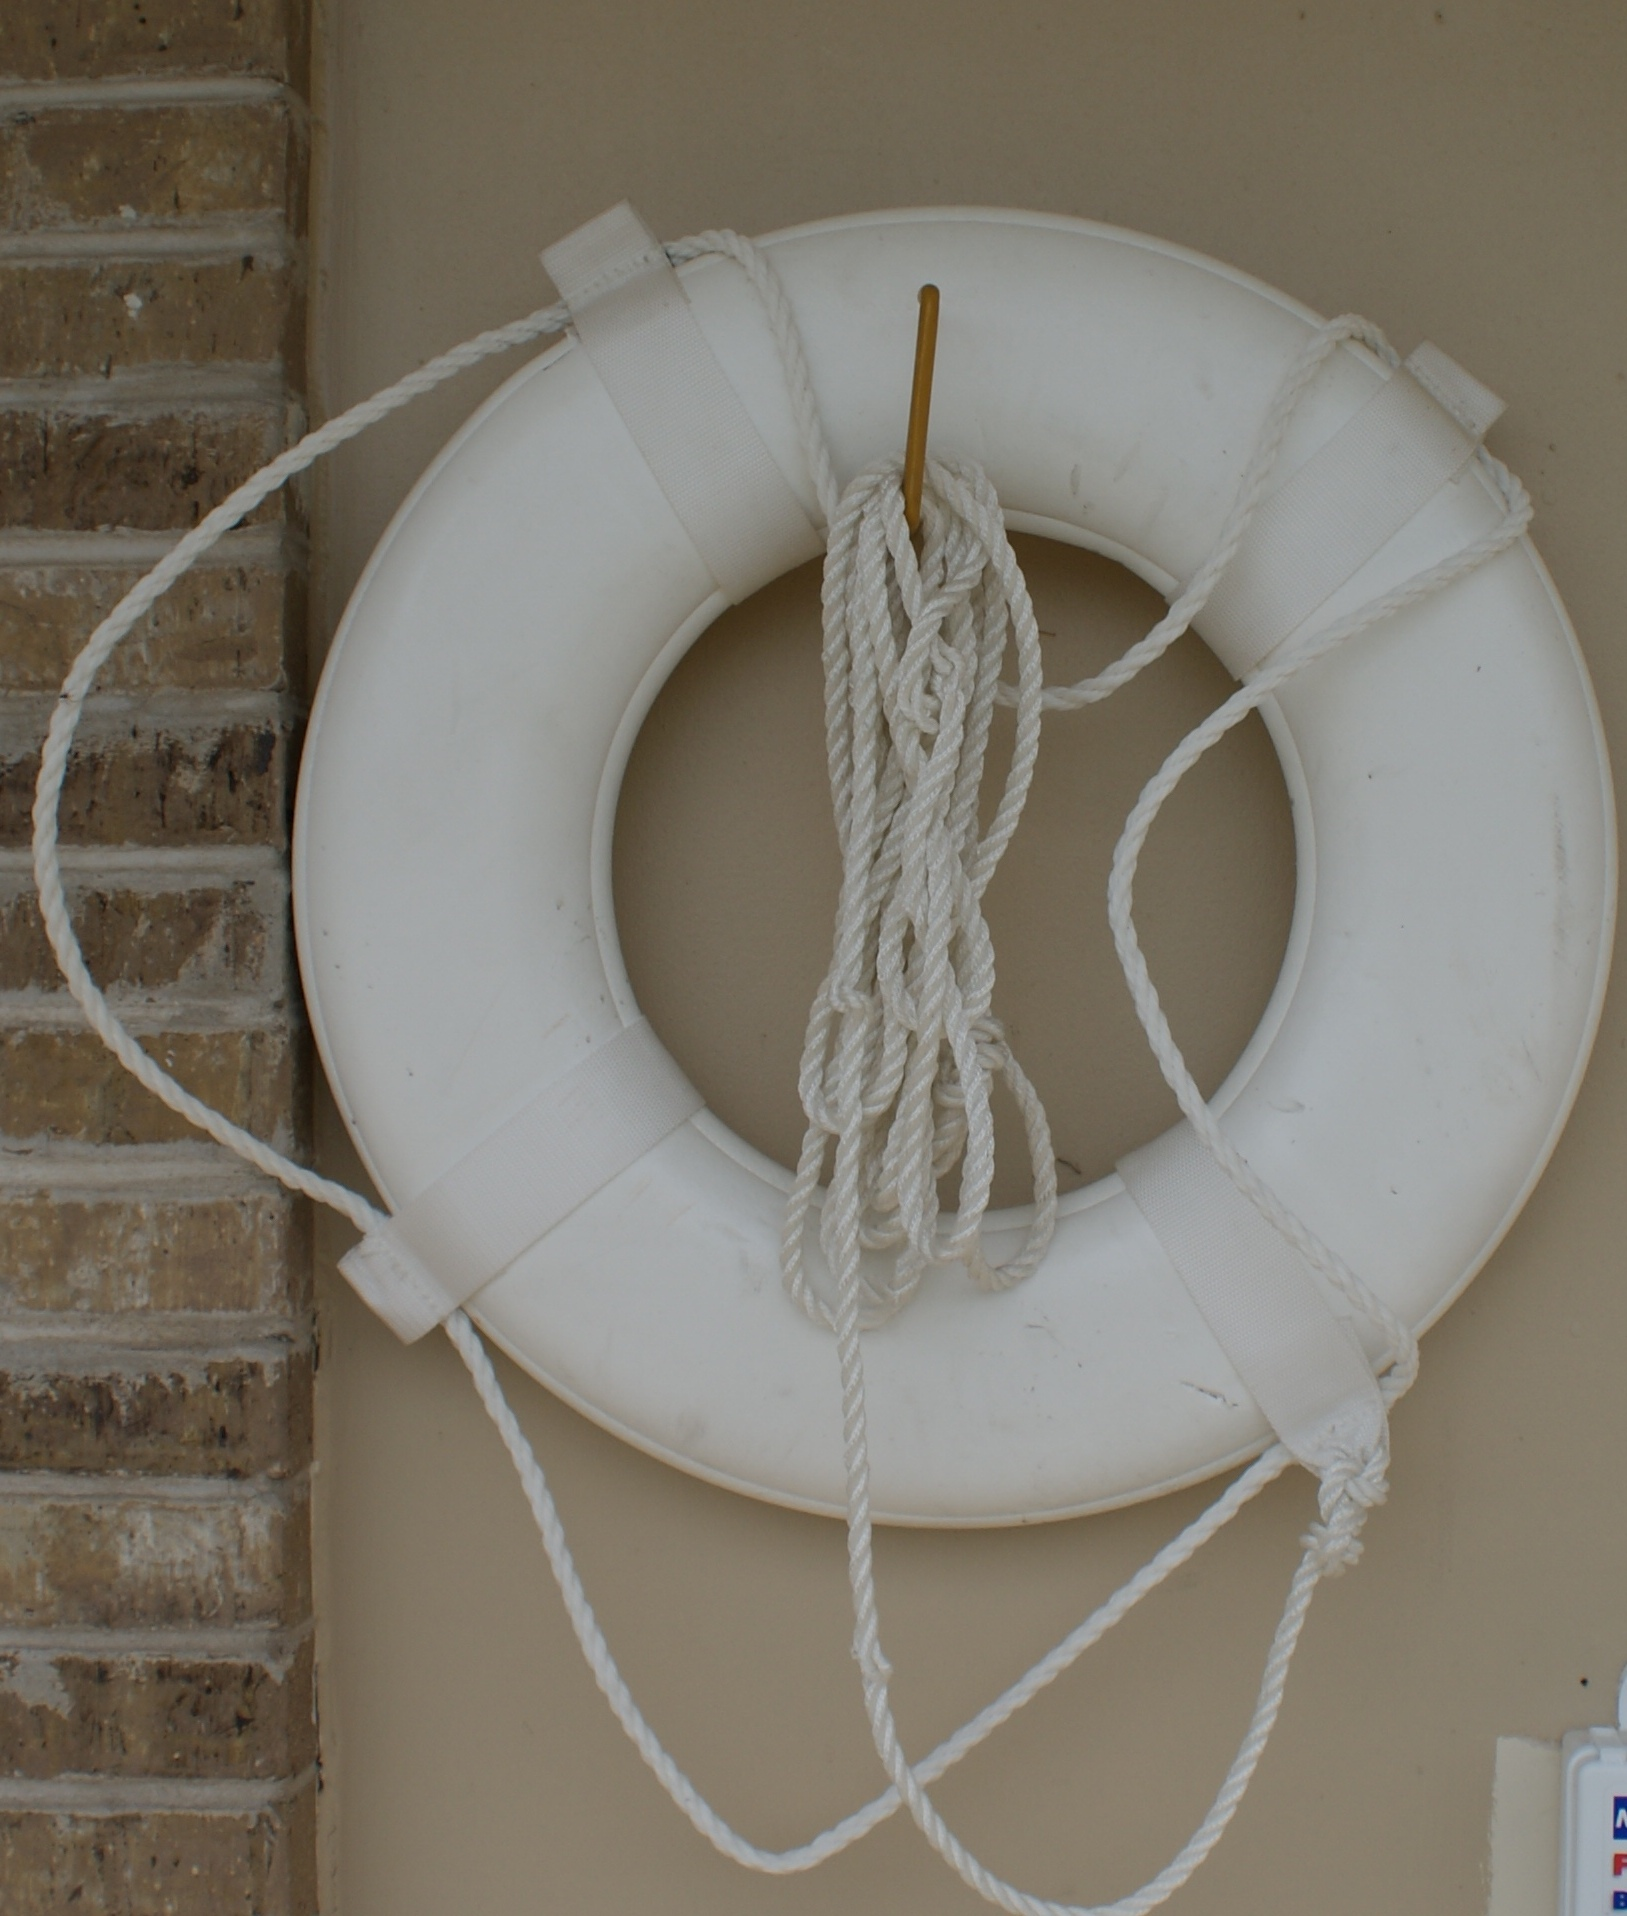 A white pool life saver hangs on a wall with ropes around it.